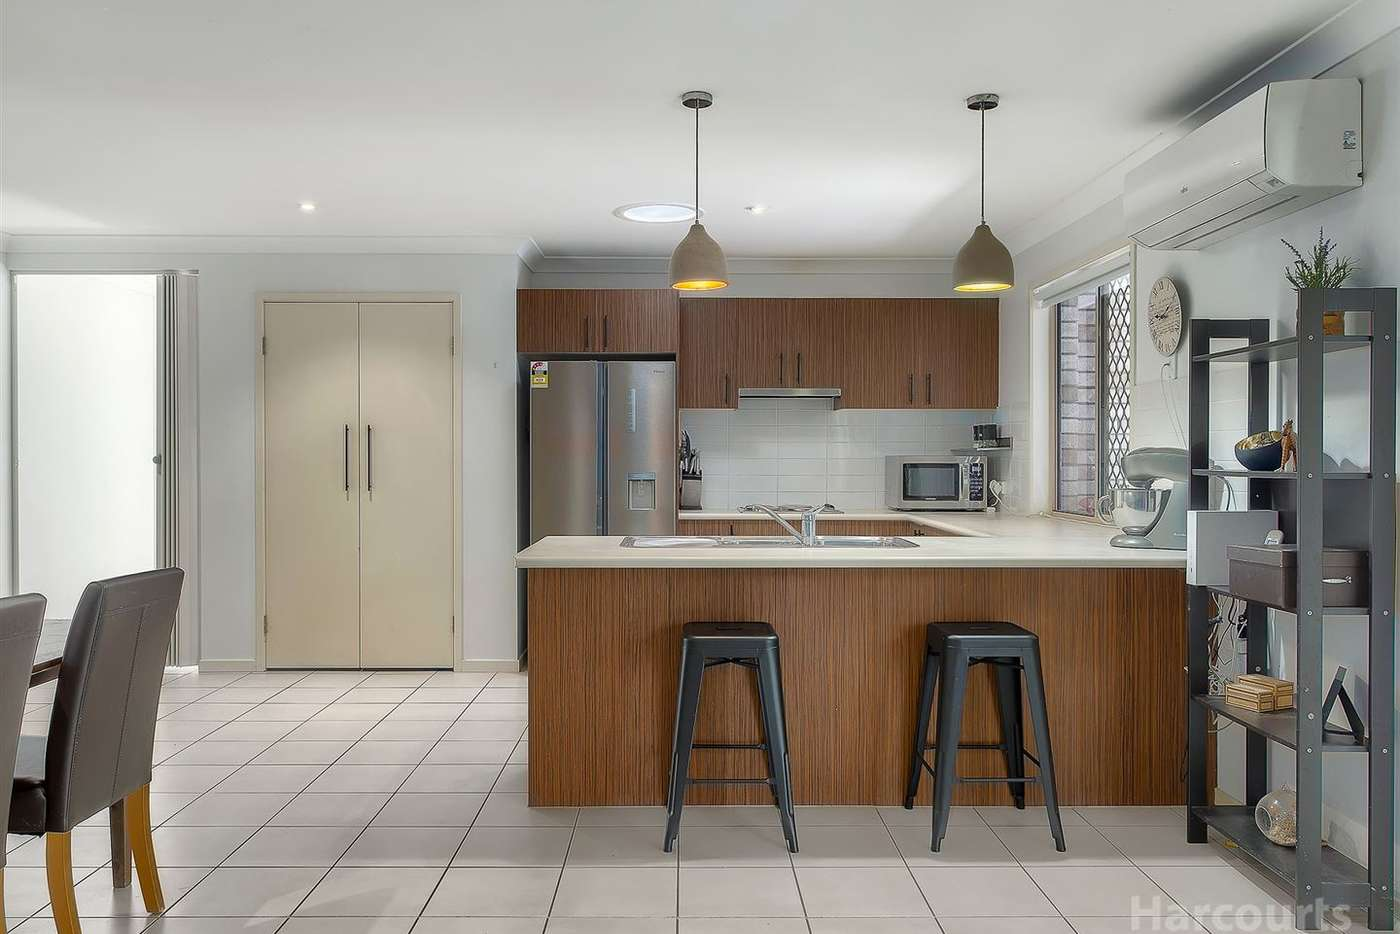 Fifth view of Homely house listing, 17 Mary Jane Ct, Joyner QLD 4500